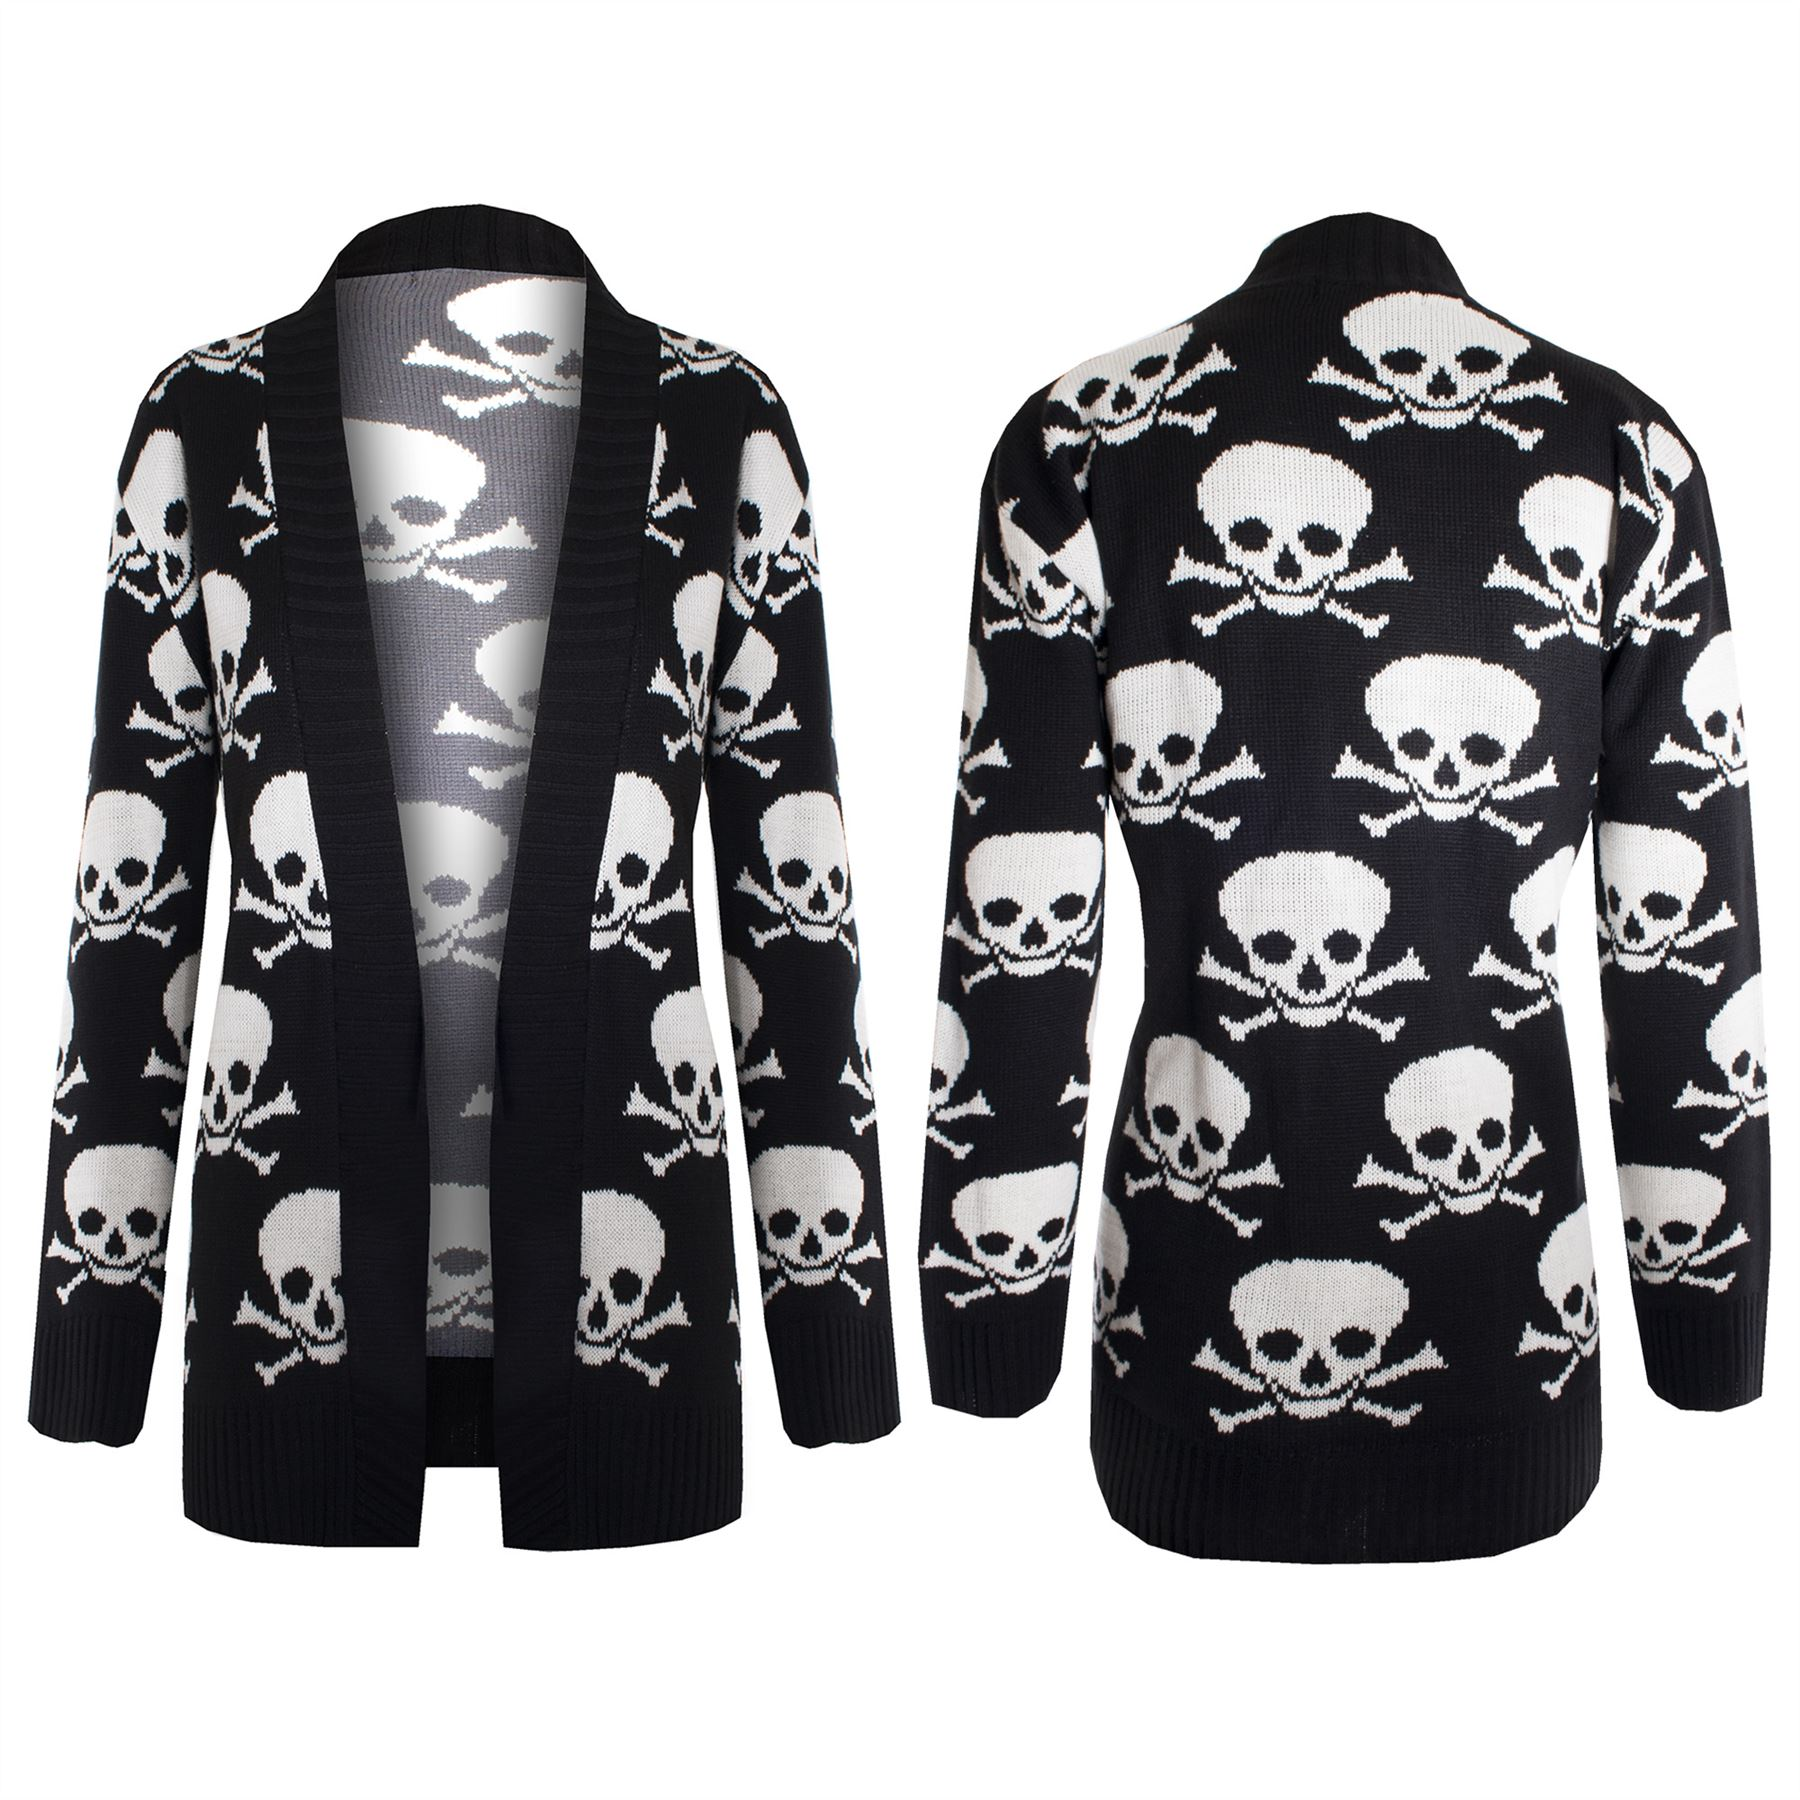 Skull sweater Native skull sweatshirt women men jumper sweaters clothing long sleeve crew neck /pullover sweaters size S M L WorkoutShirts. out of 5 stars () $ $ $ (10% off).